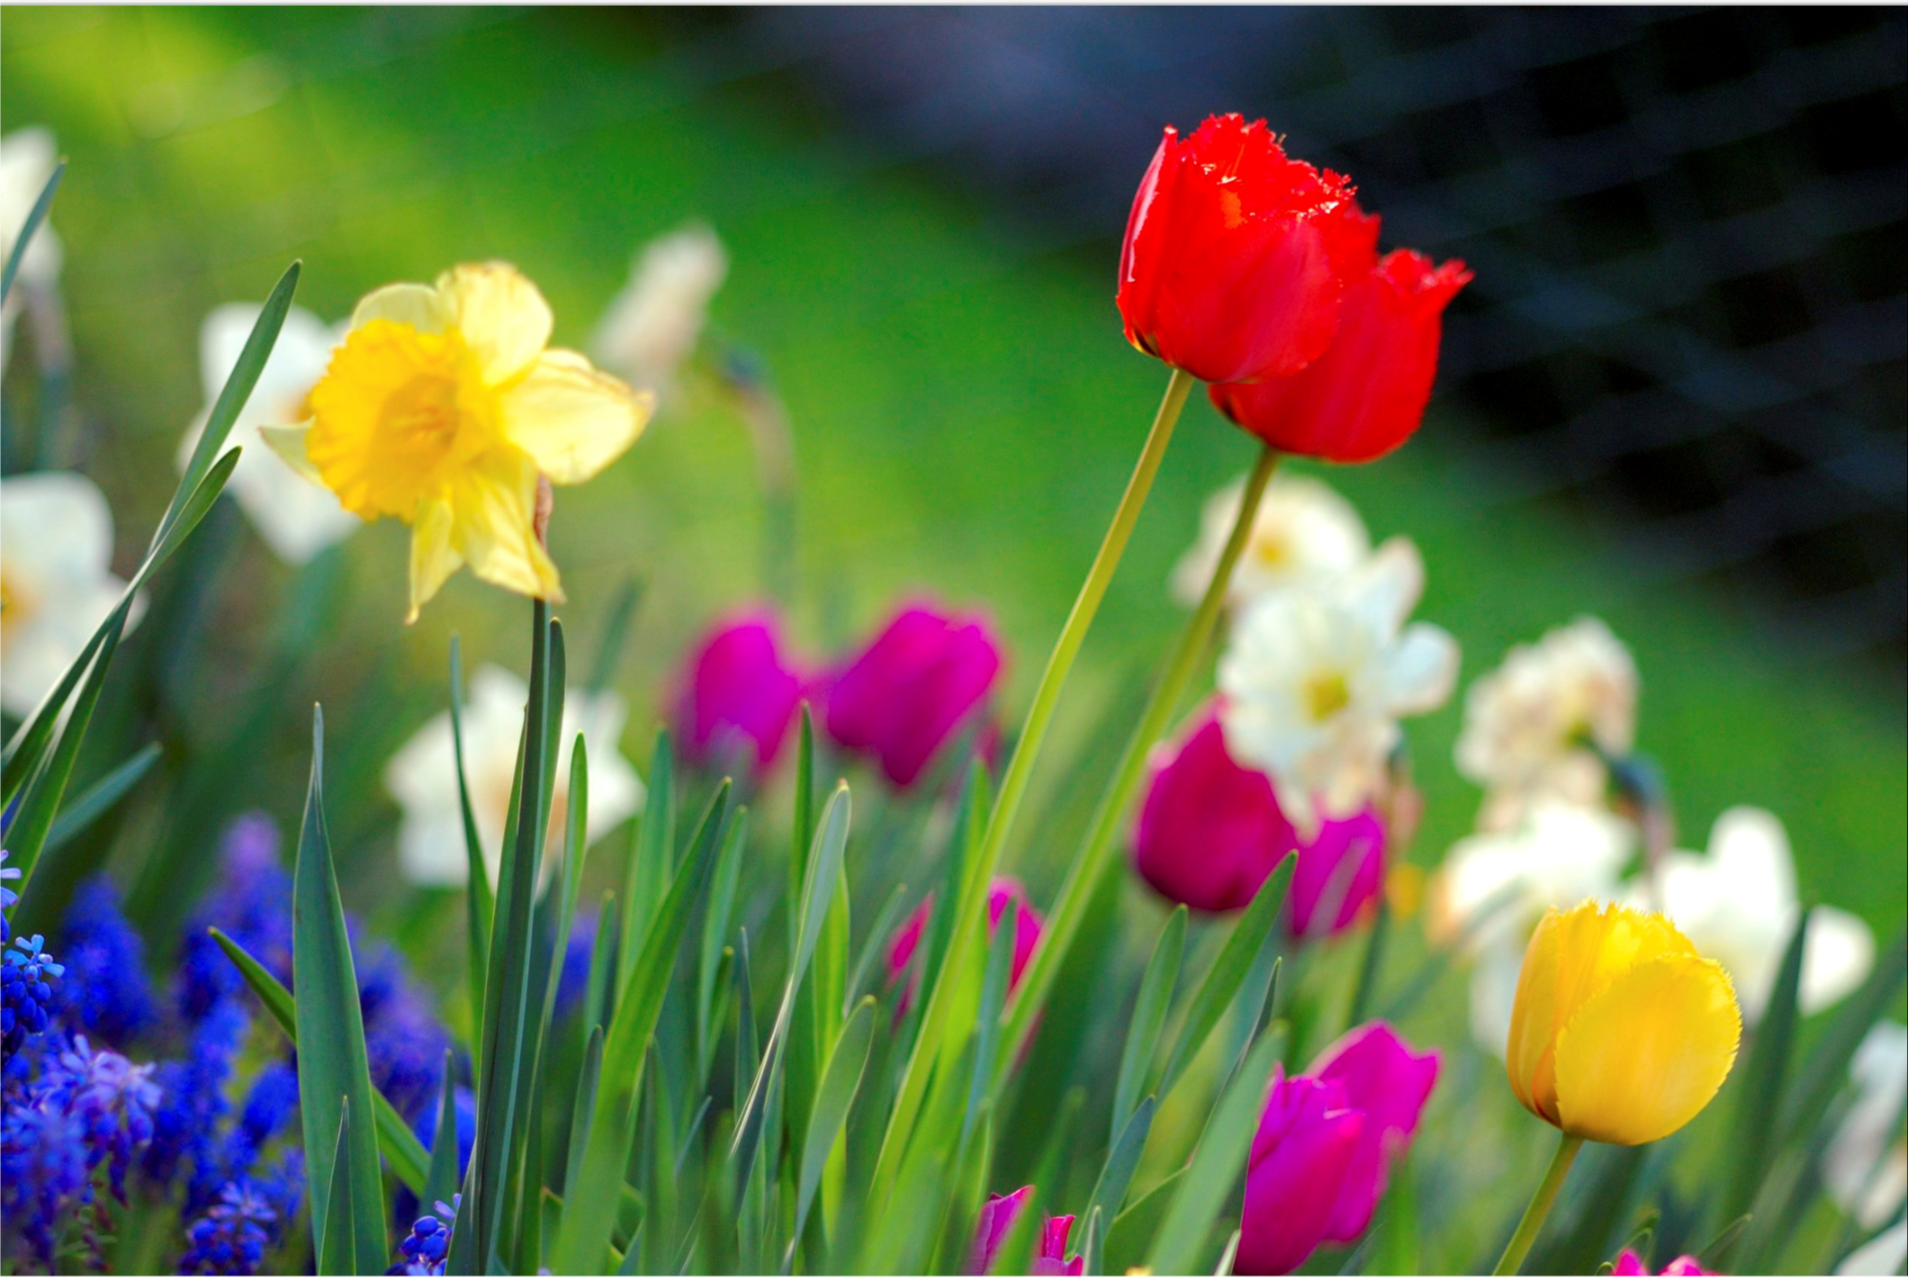 Colorful spring garden flowers Anita Martinz from Klagenfurt, Austria - Colorful spring garden